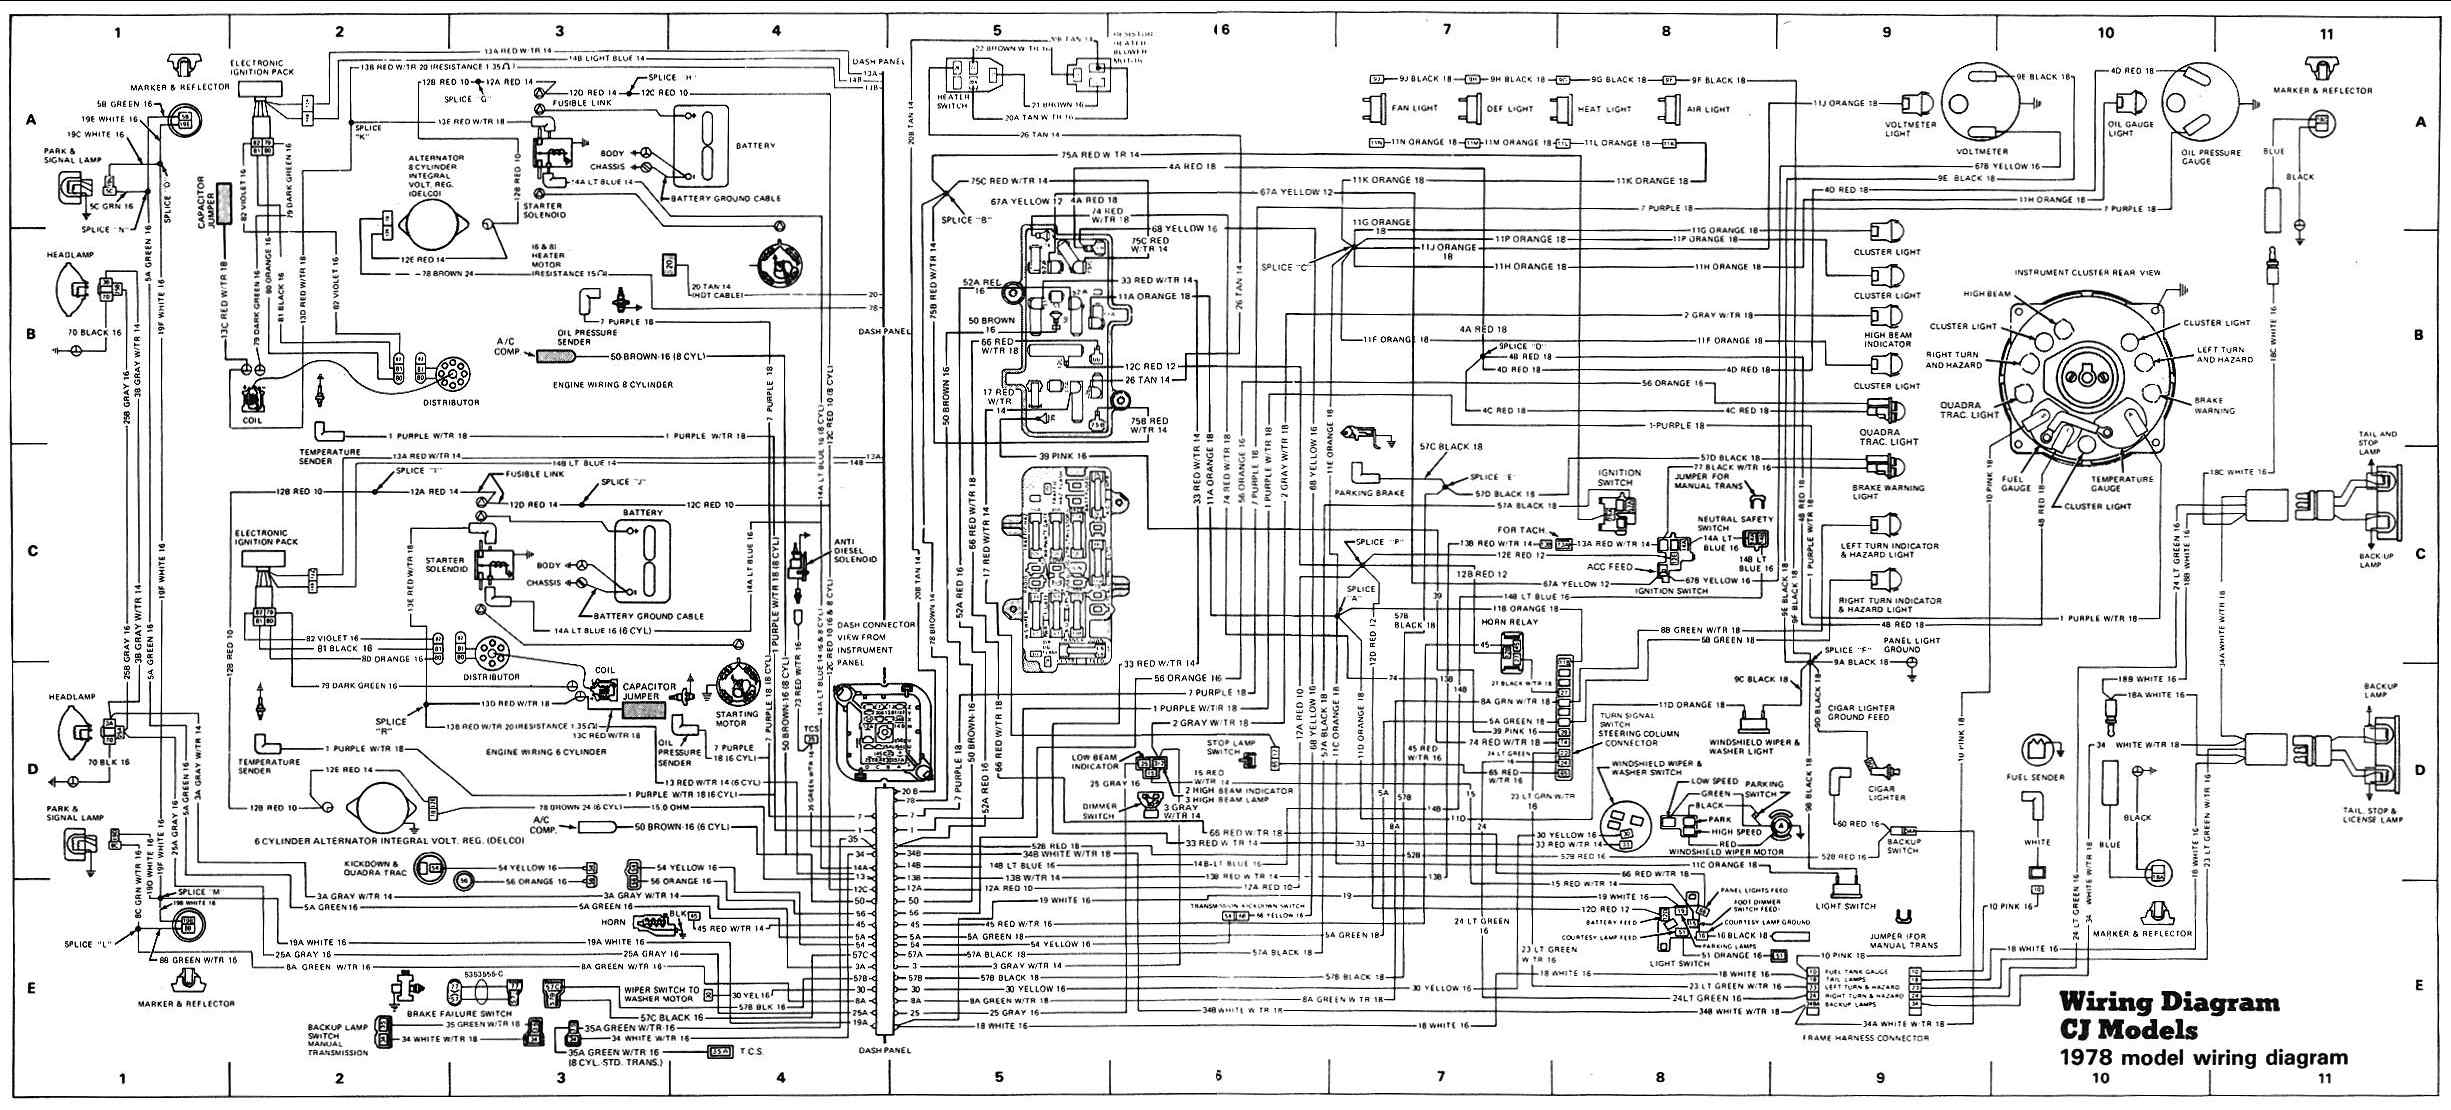 1978 Explorer Wiring Diagram Library